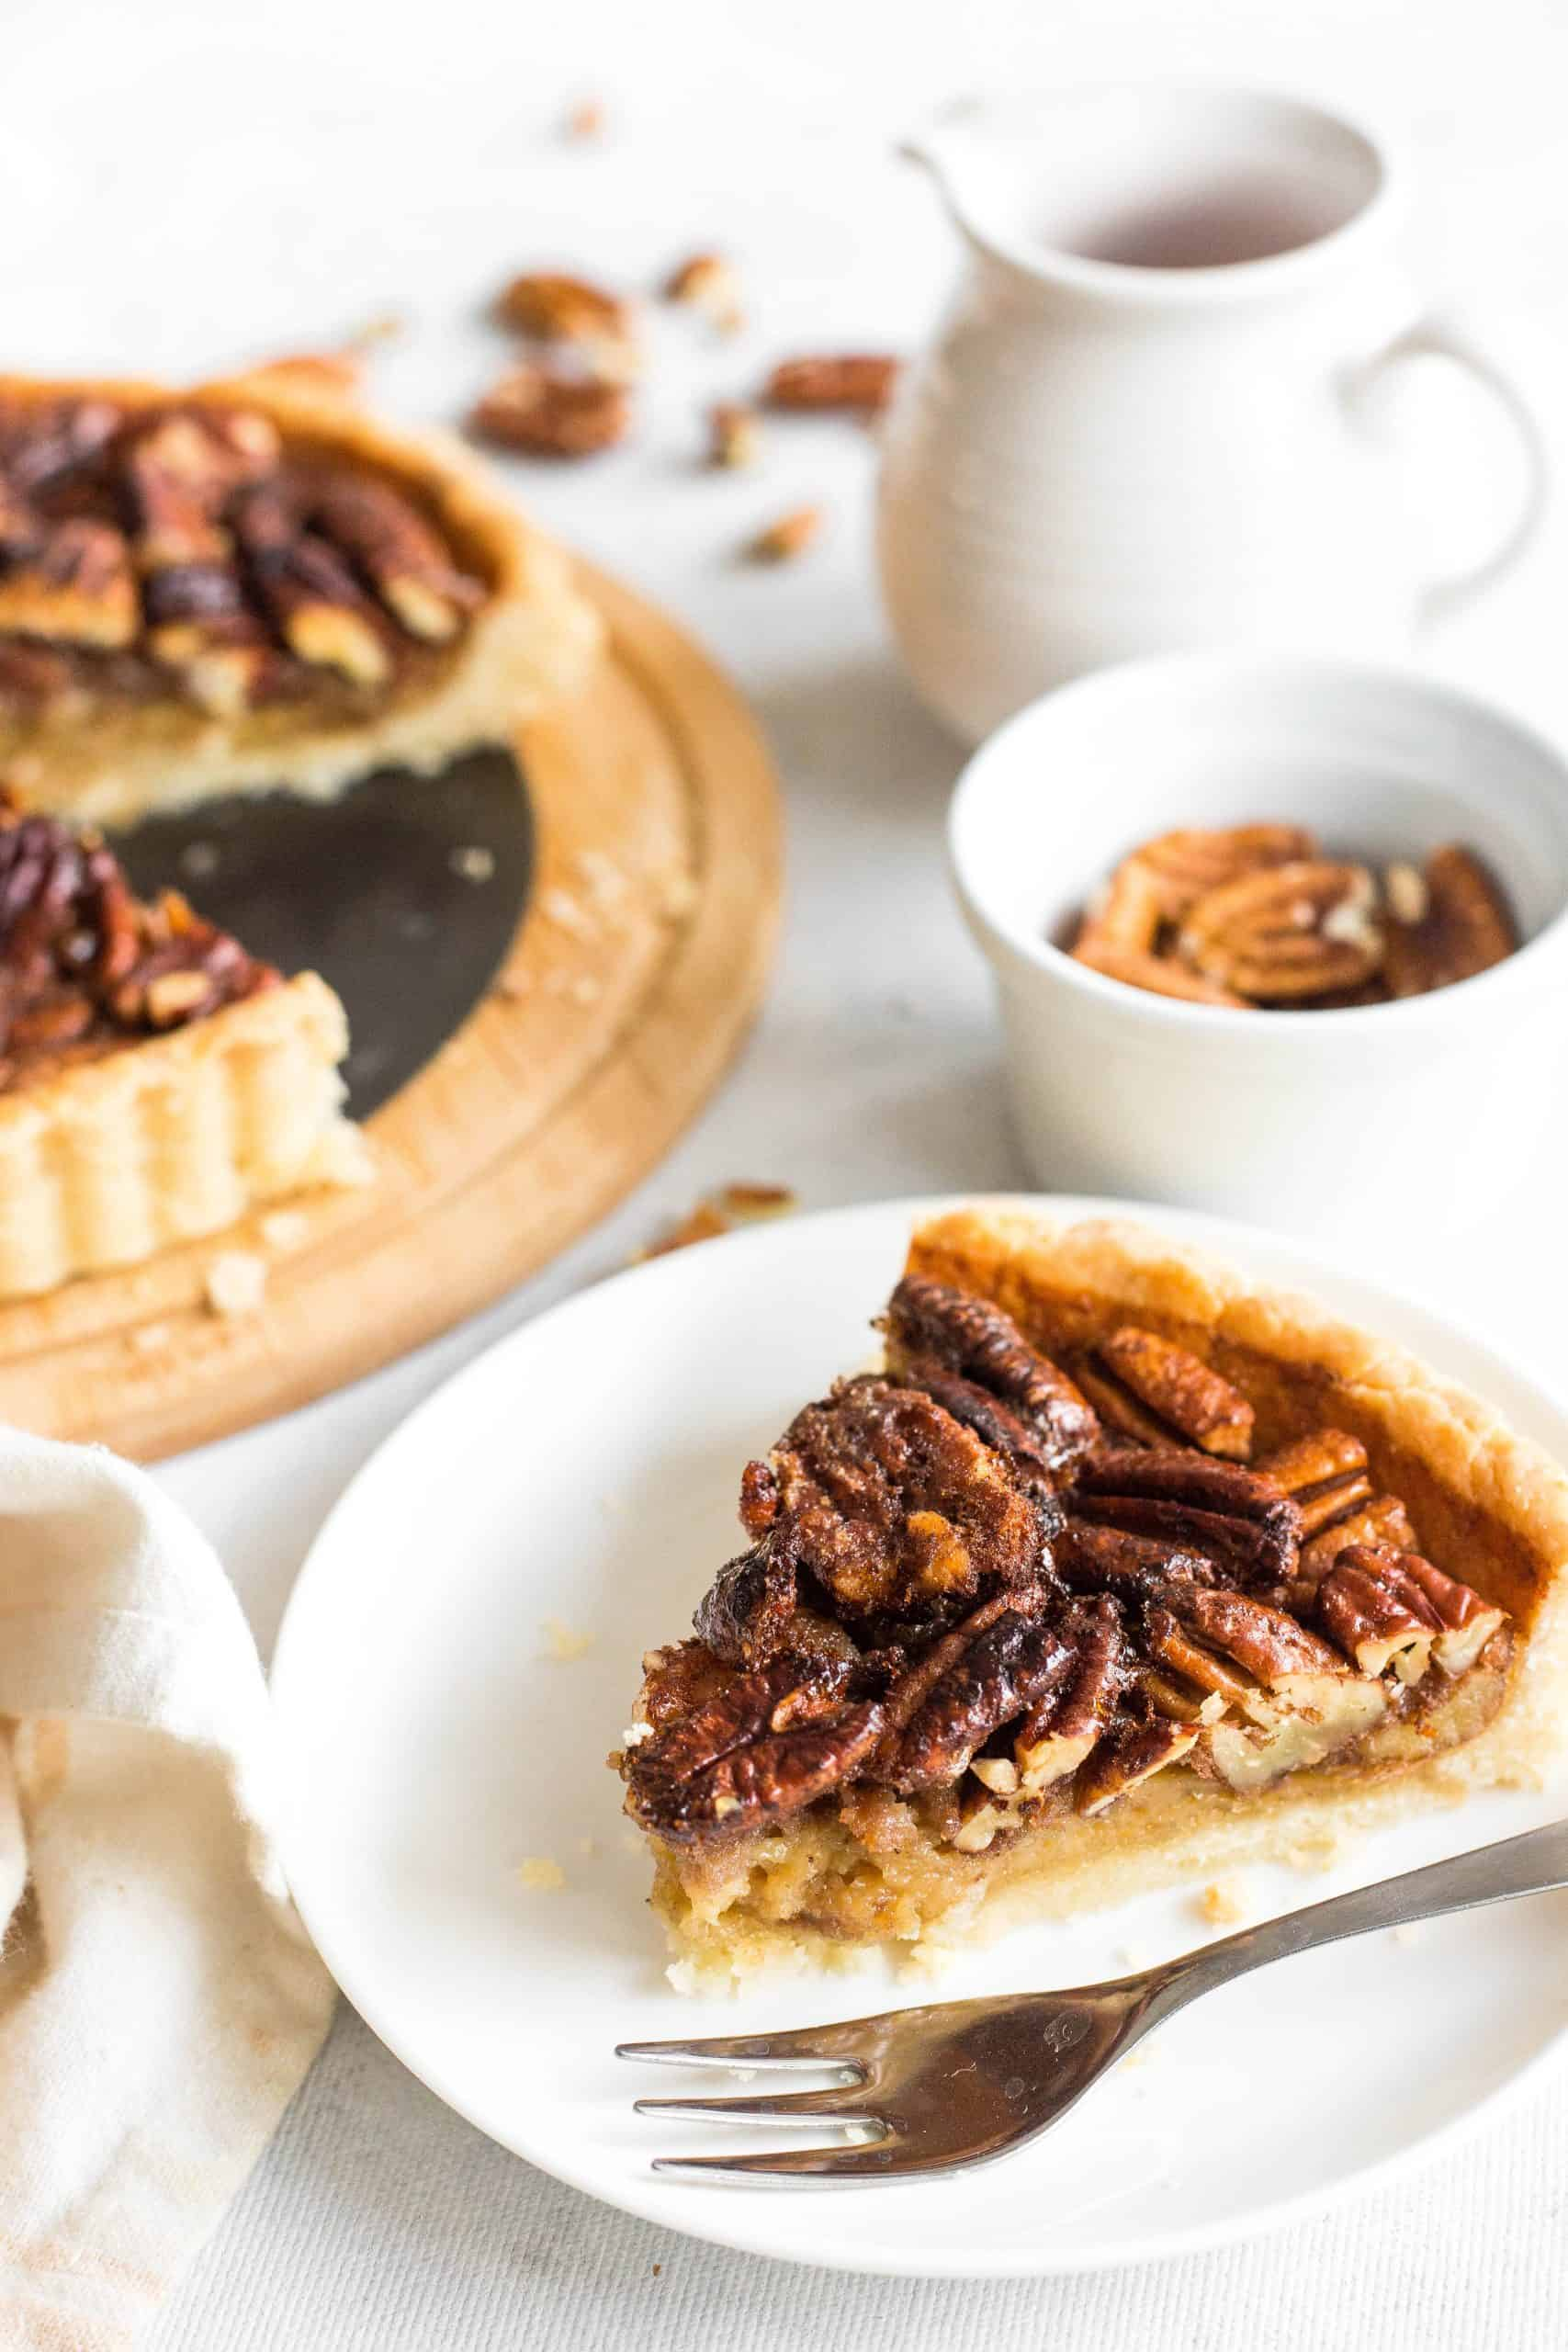 A slice of pecan pie on a white placte.